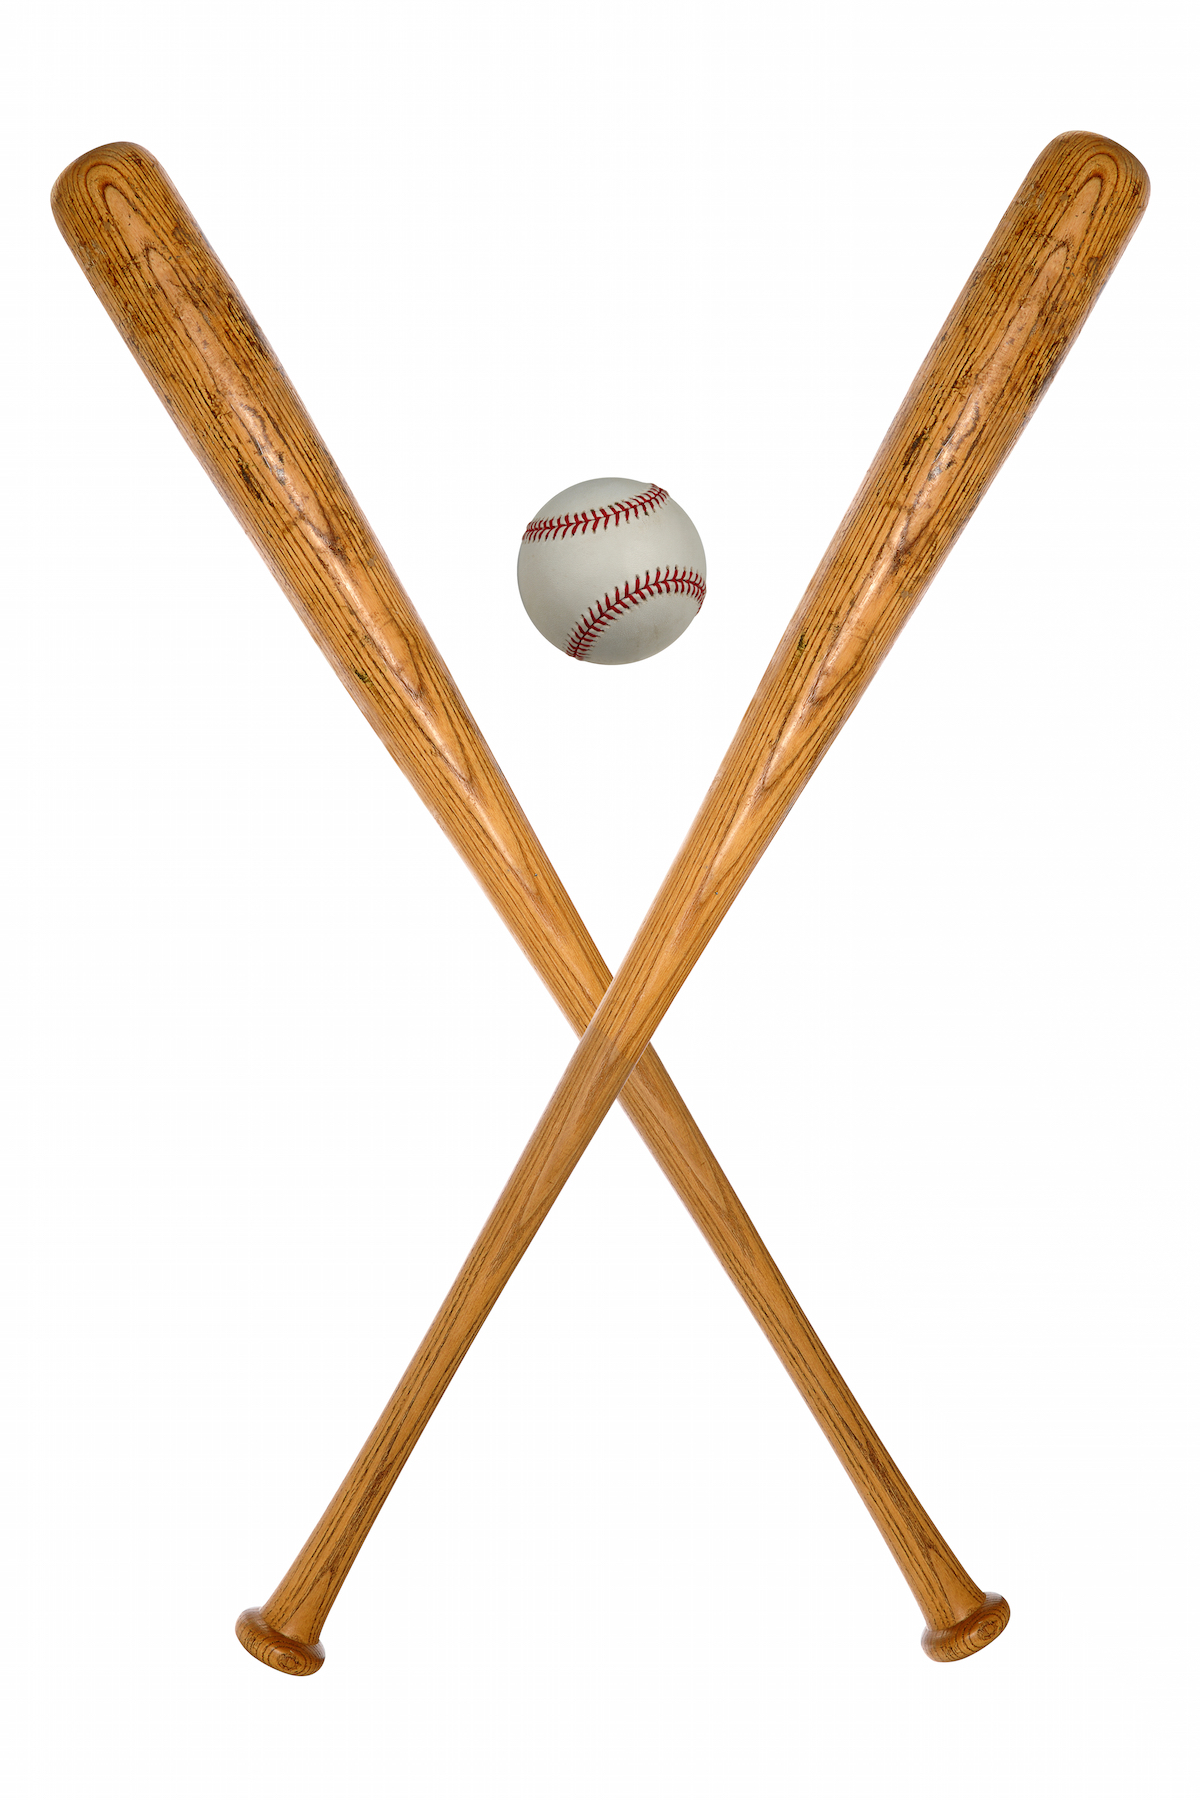 baseball bat We have the best selection of baseball equipment and baseball gear including bats, gloves, training equipment, and more.